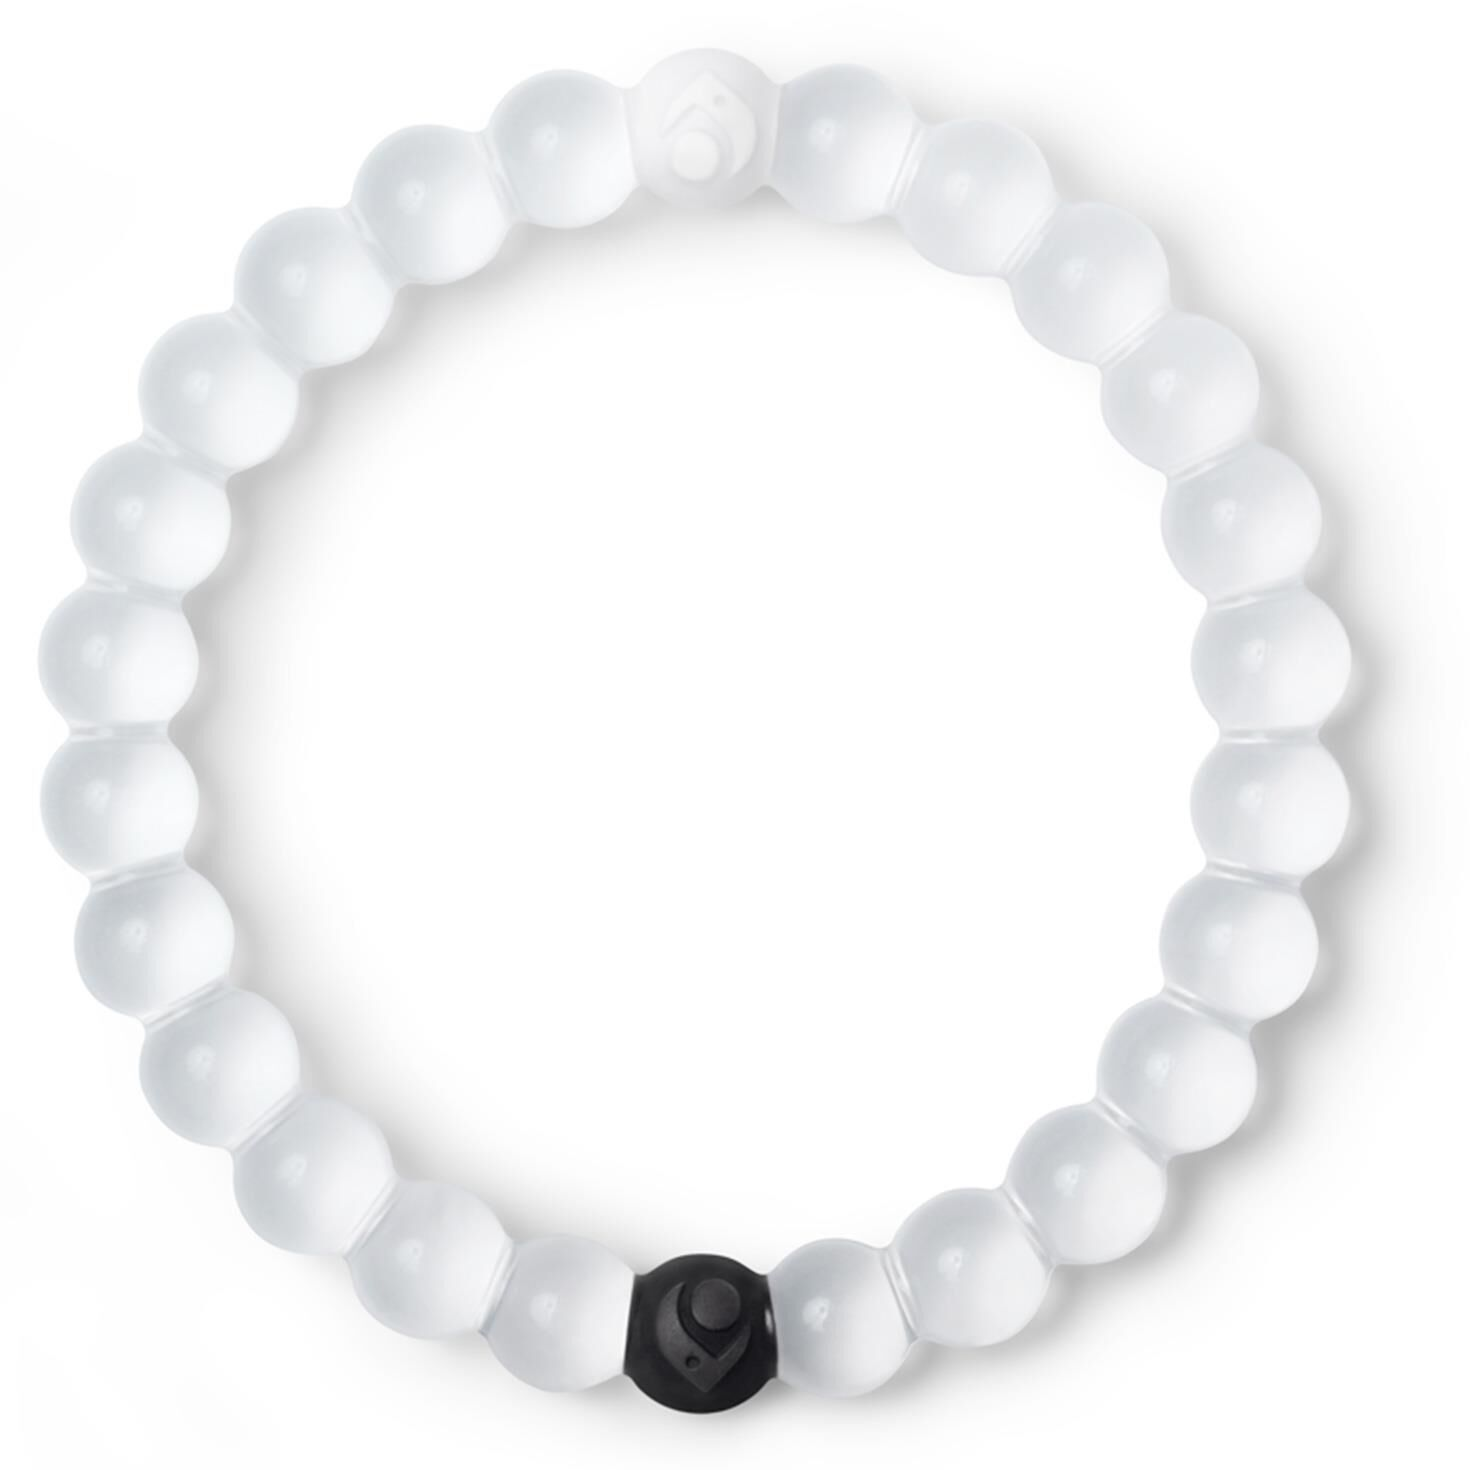 graphic about Lokai Bracelet Meaning Printable known as Clic Lokai Bracelet, Minimal